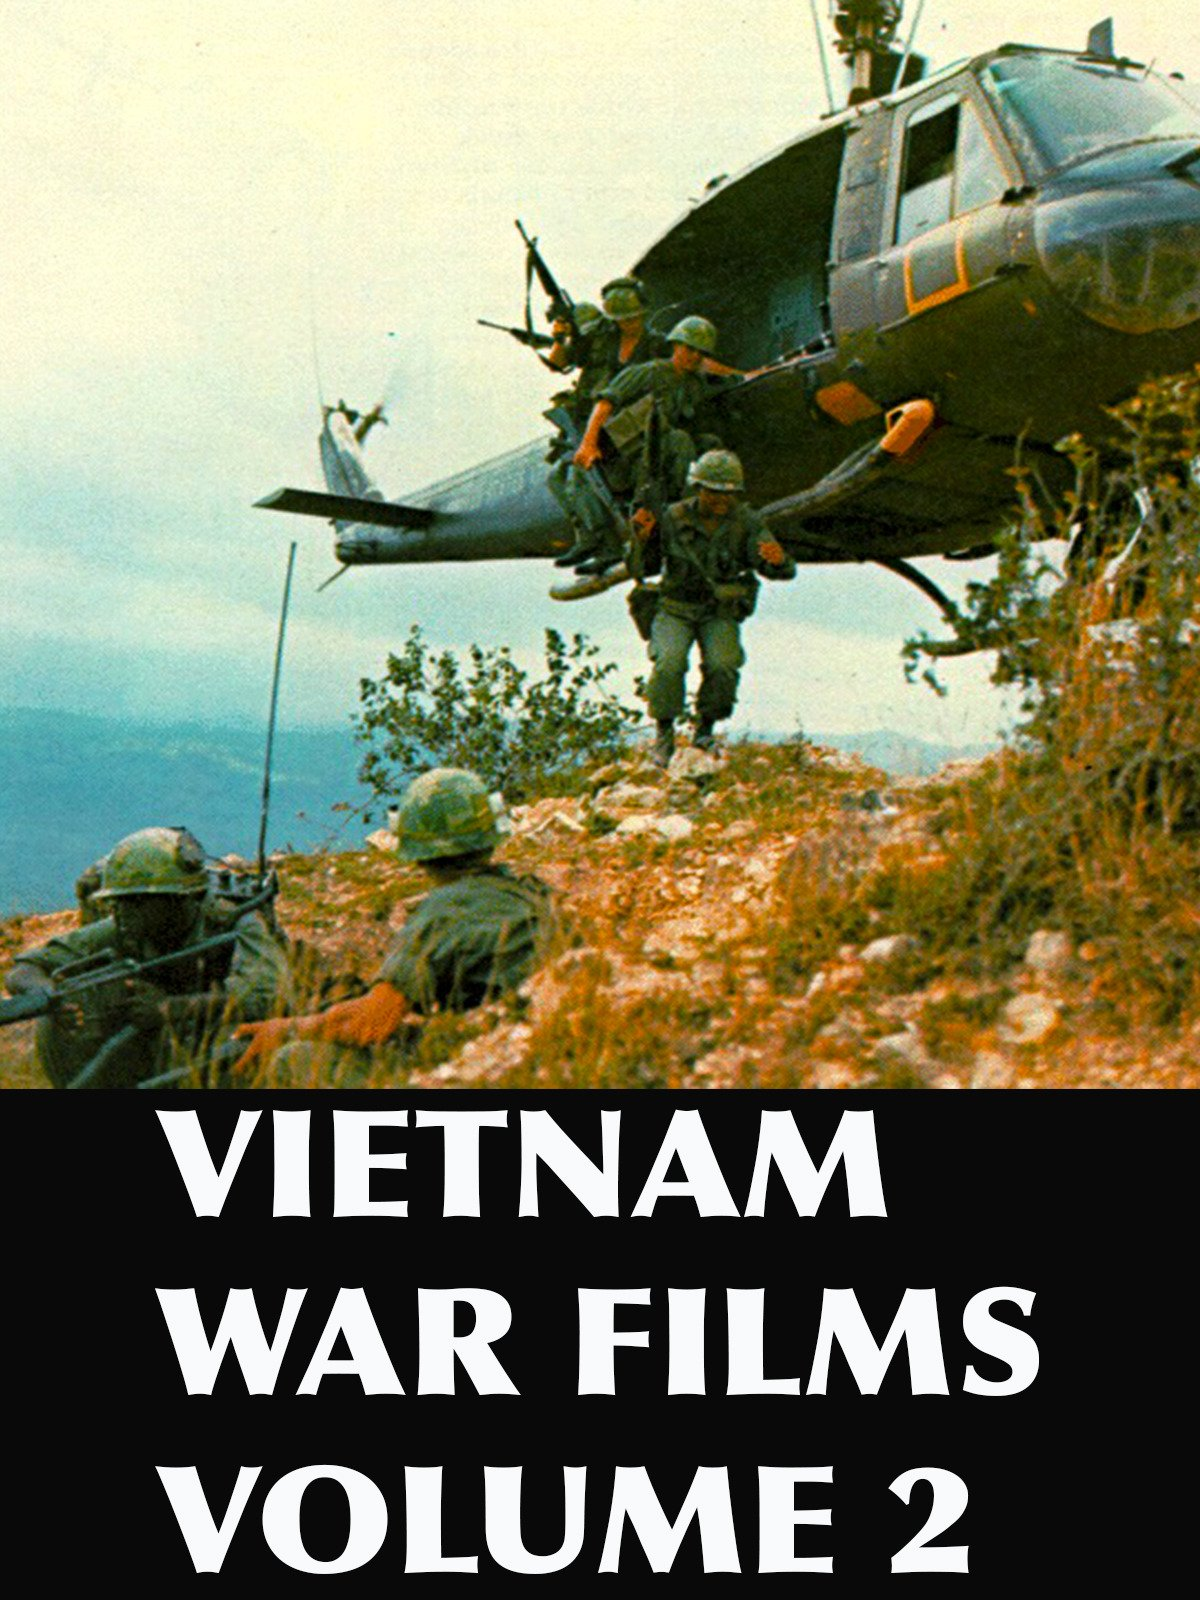 Vietnam War Films Volume 2